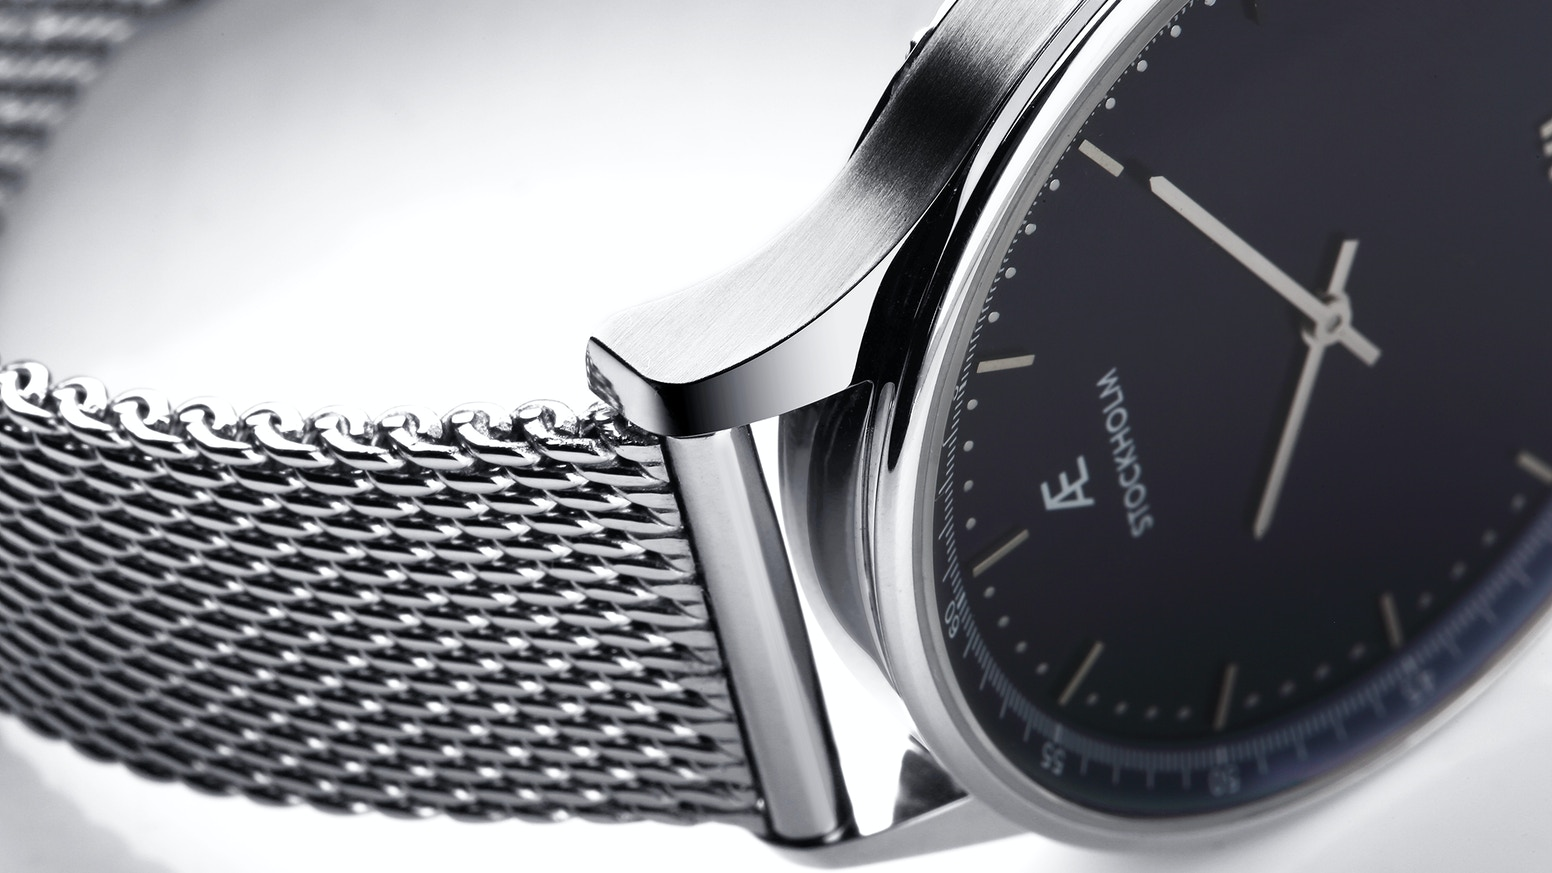 Handmade Scandinavian watches with Customizable Straps. Craftsmanship at an affordable price.